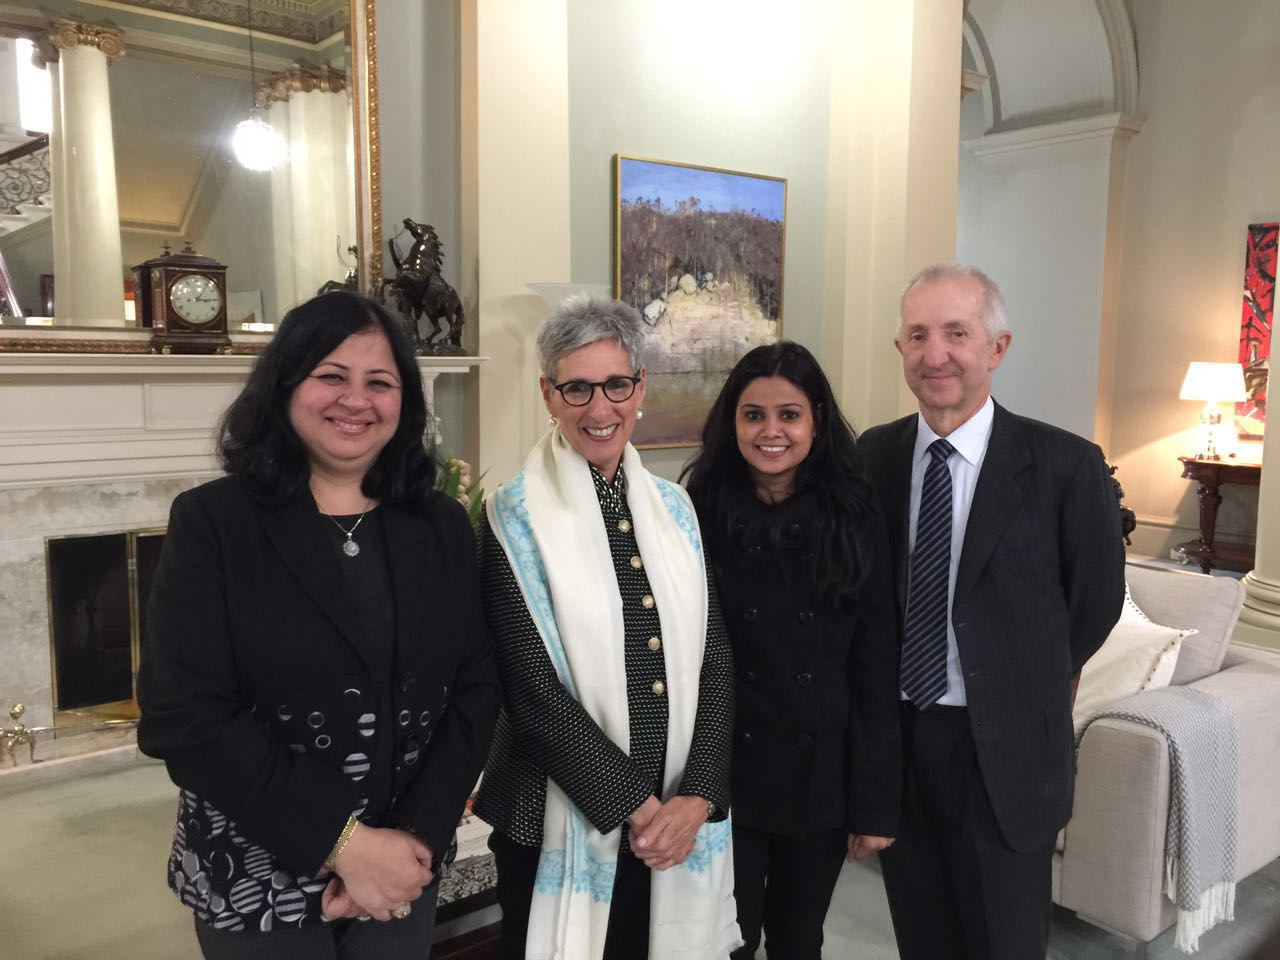 Dr Kiran, the Governor of Victoria - Hon Linda Dessau, Usha and Robert Johanson